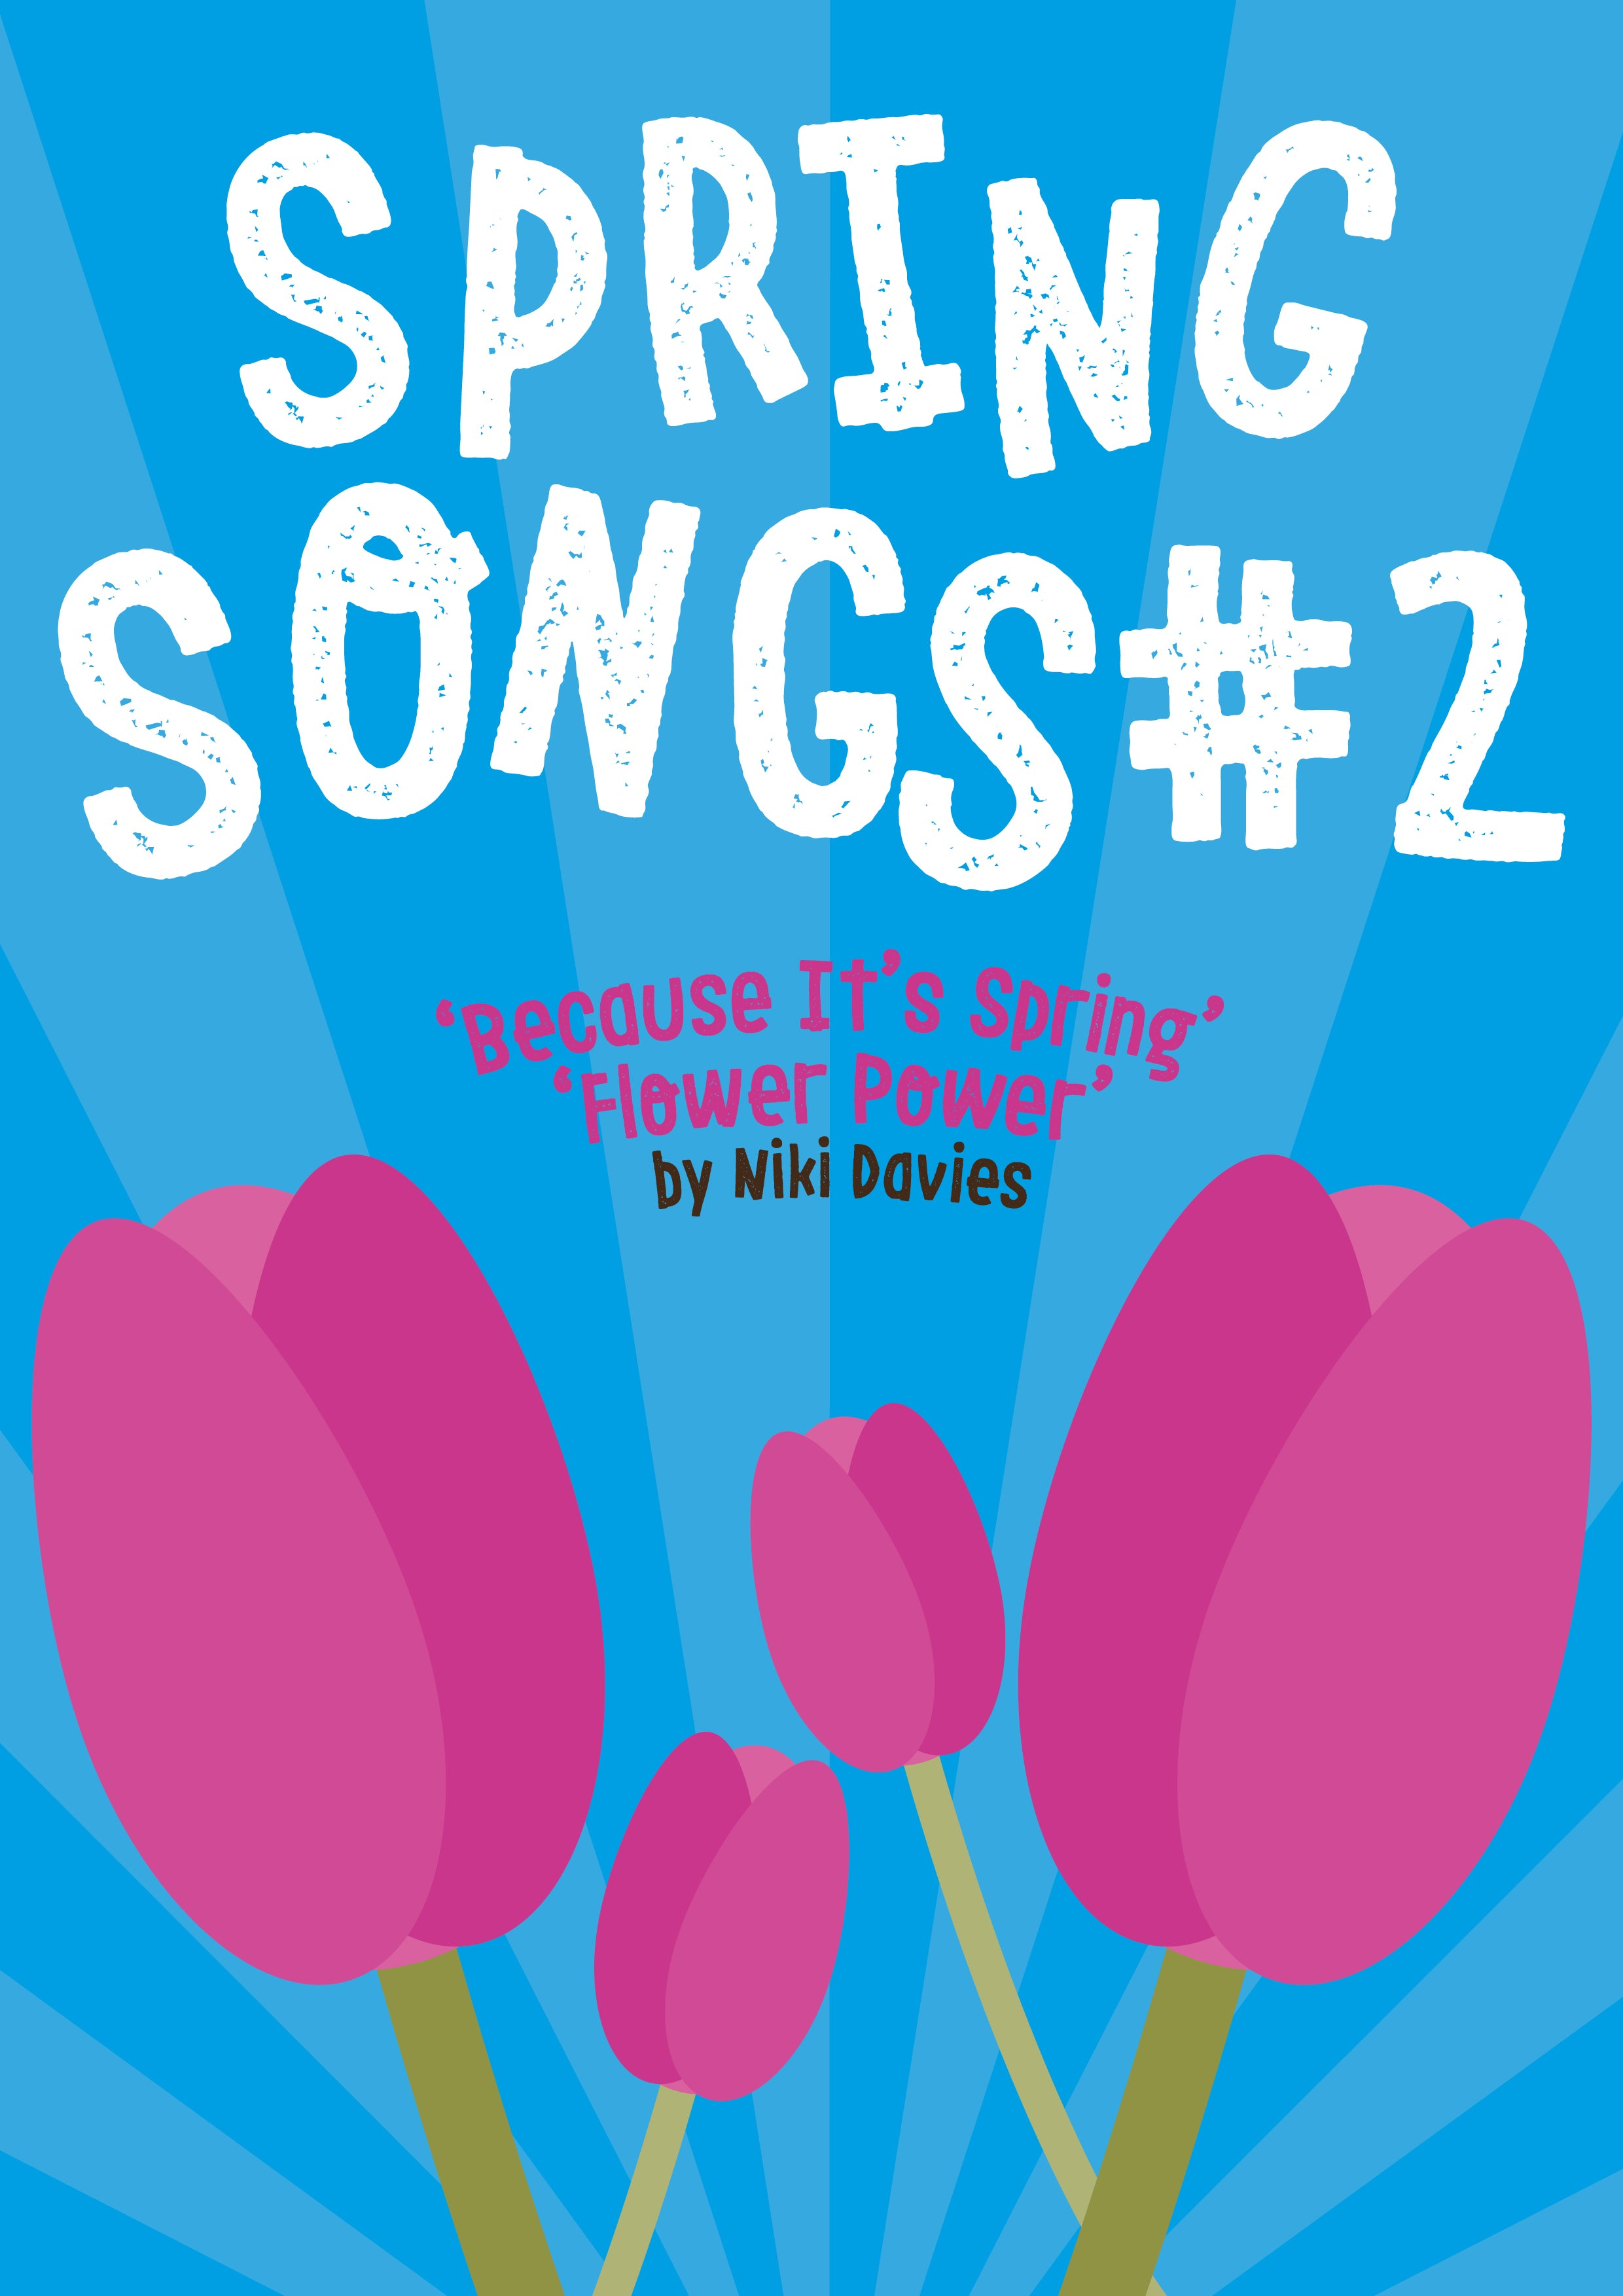 Spring Songs #2 Download Pack - 100% Discount With Code SPRING200